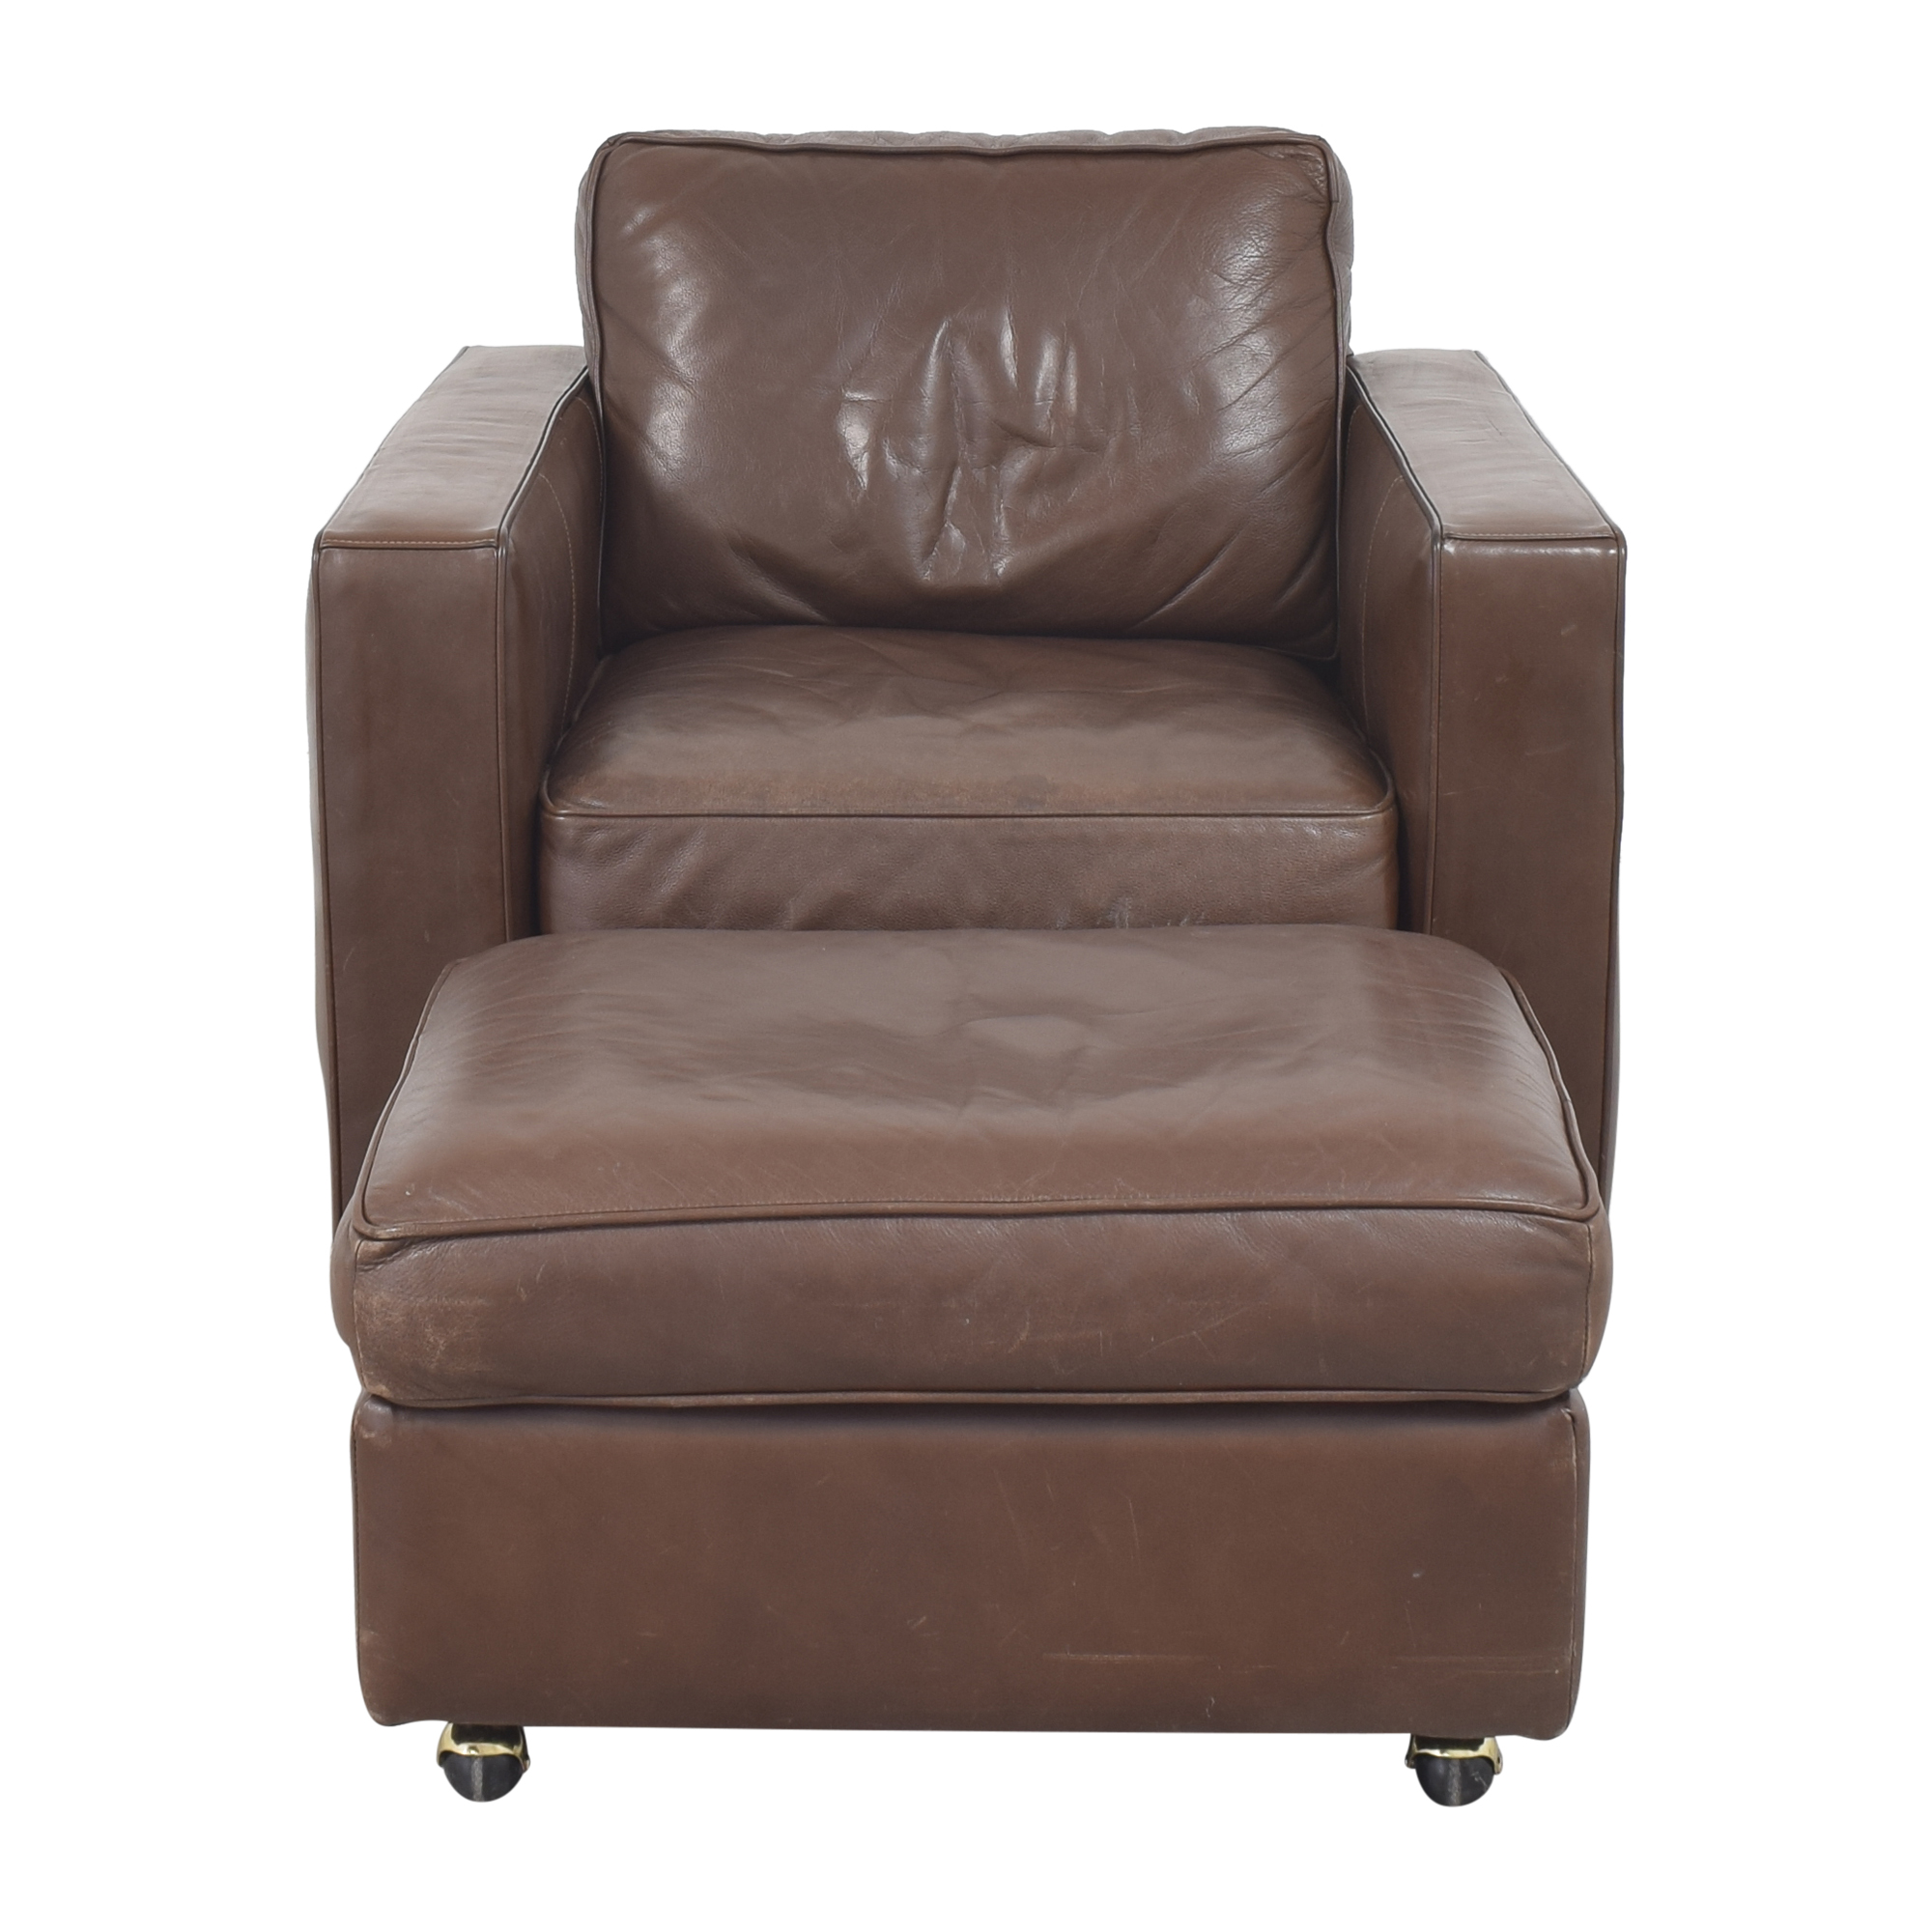 buy Room & Board Accent Chair with Ottoman Room & Board